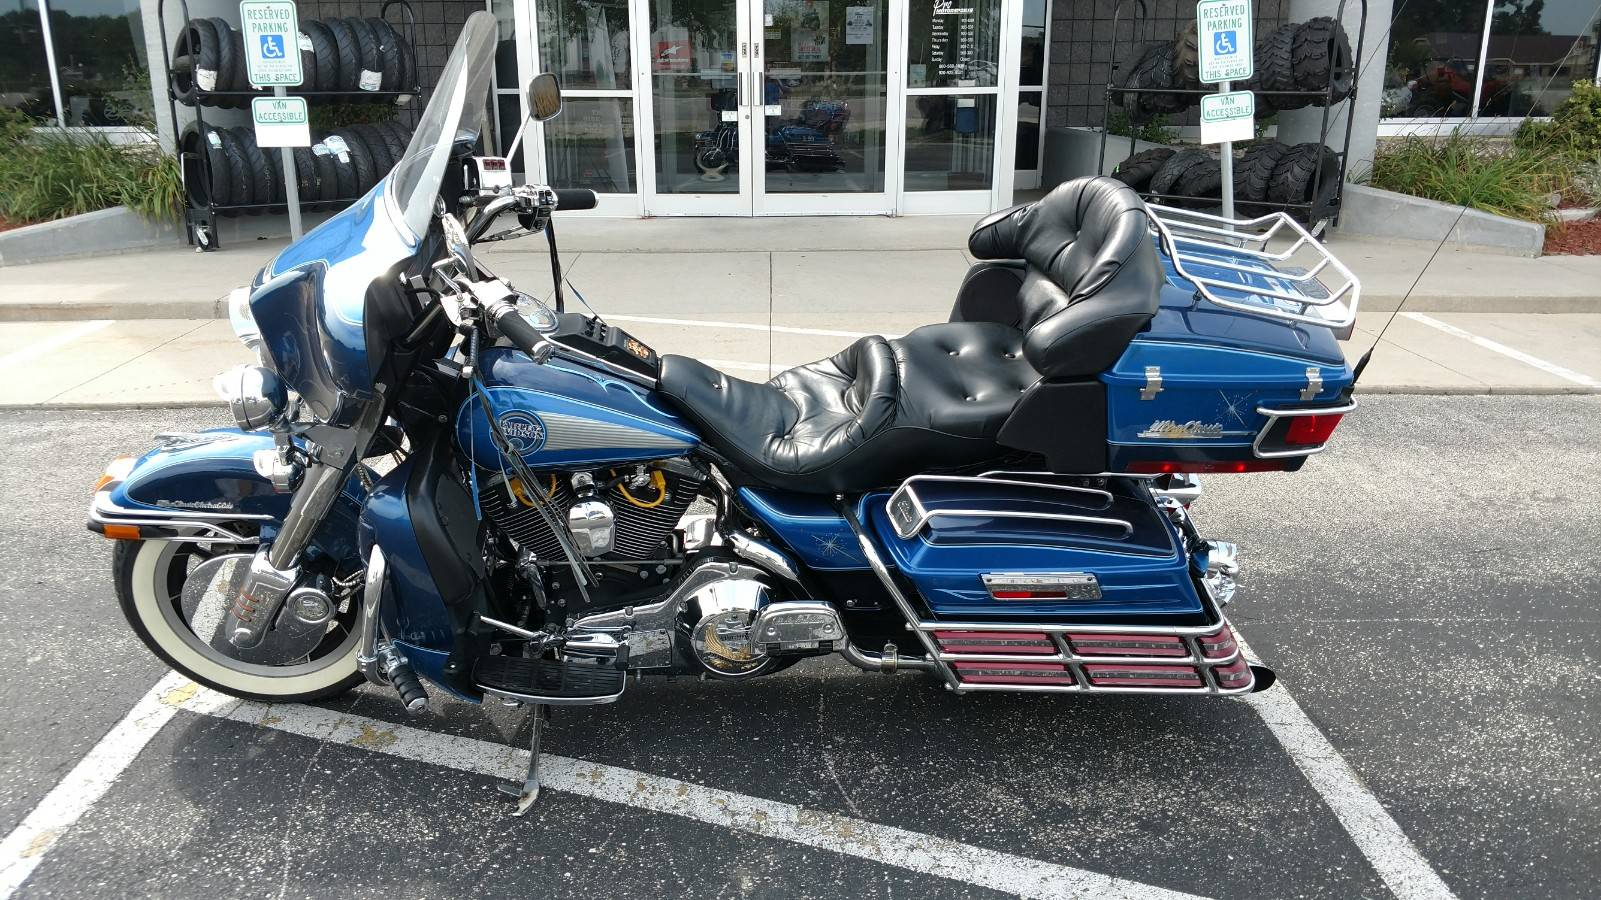 1993 Harley-Davidson ultra classic in Fond Du Lac, Wisconsin